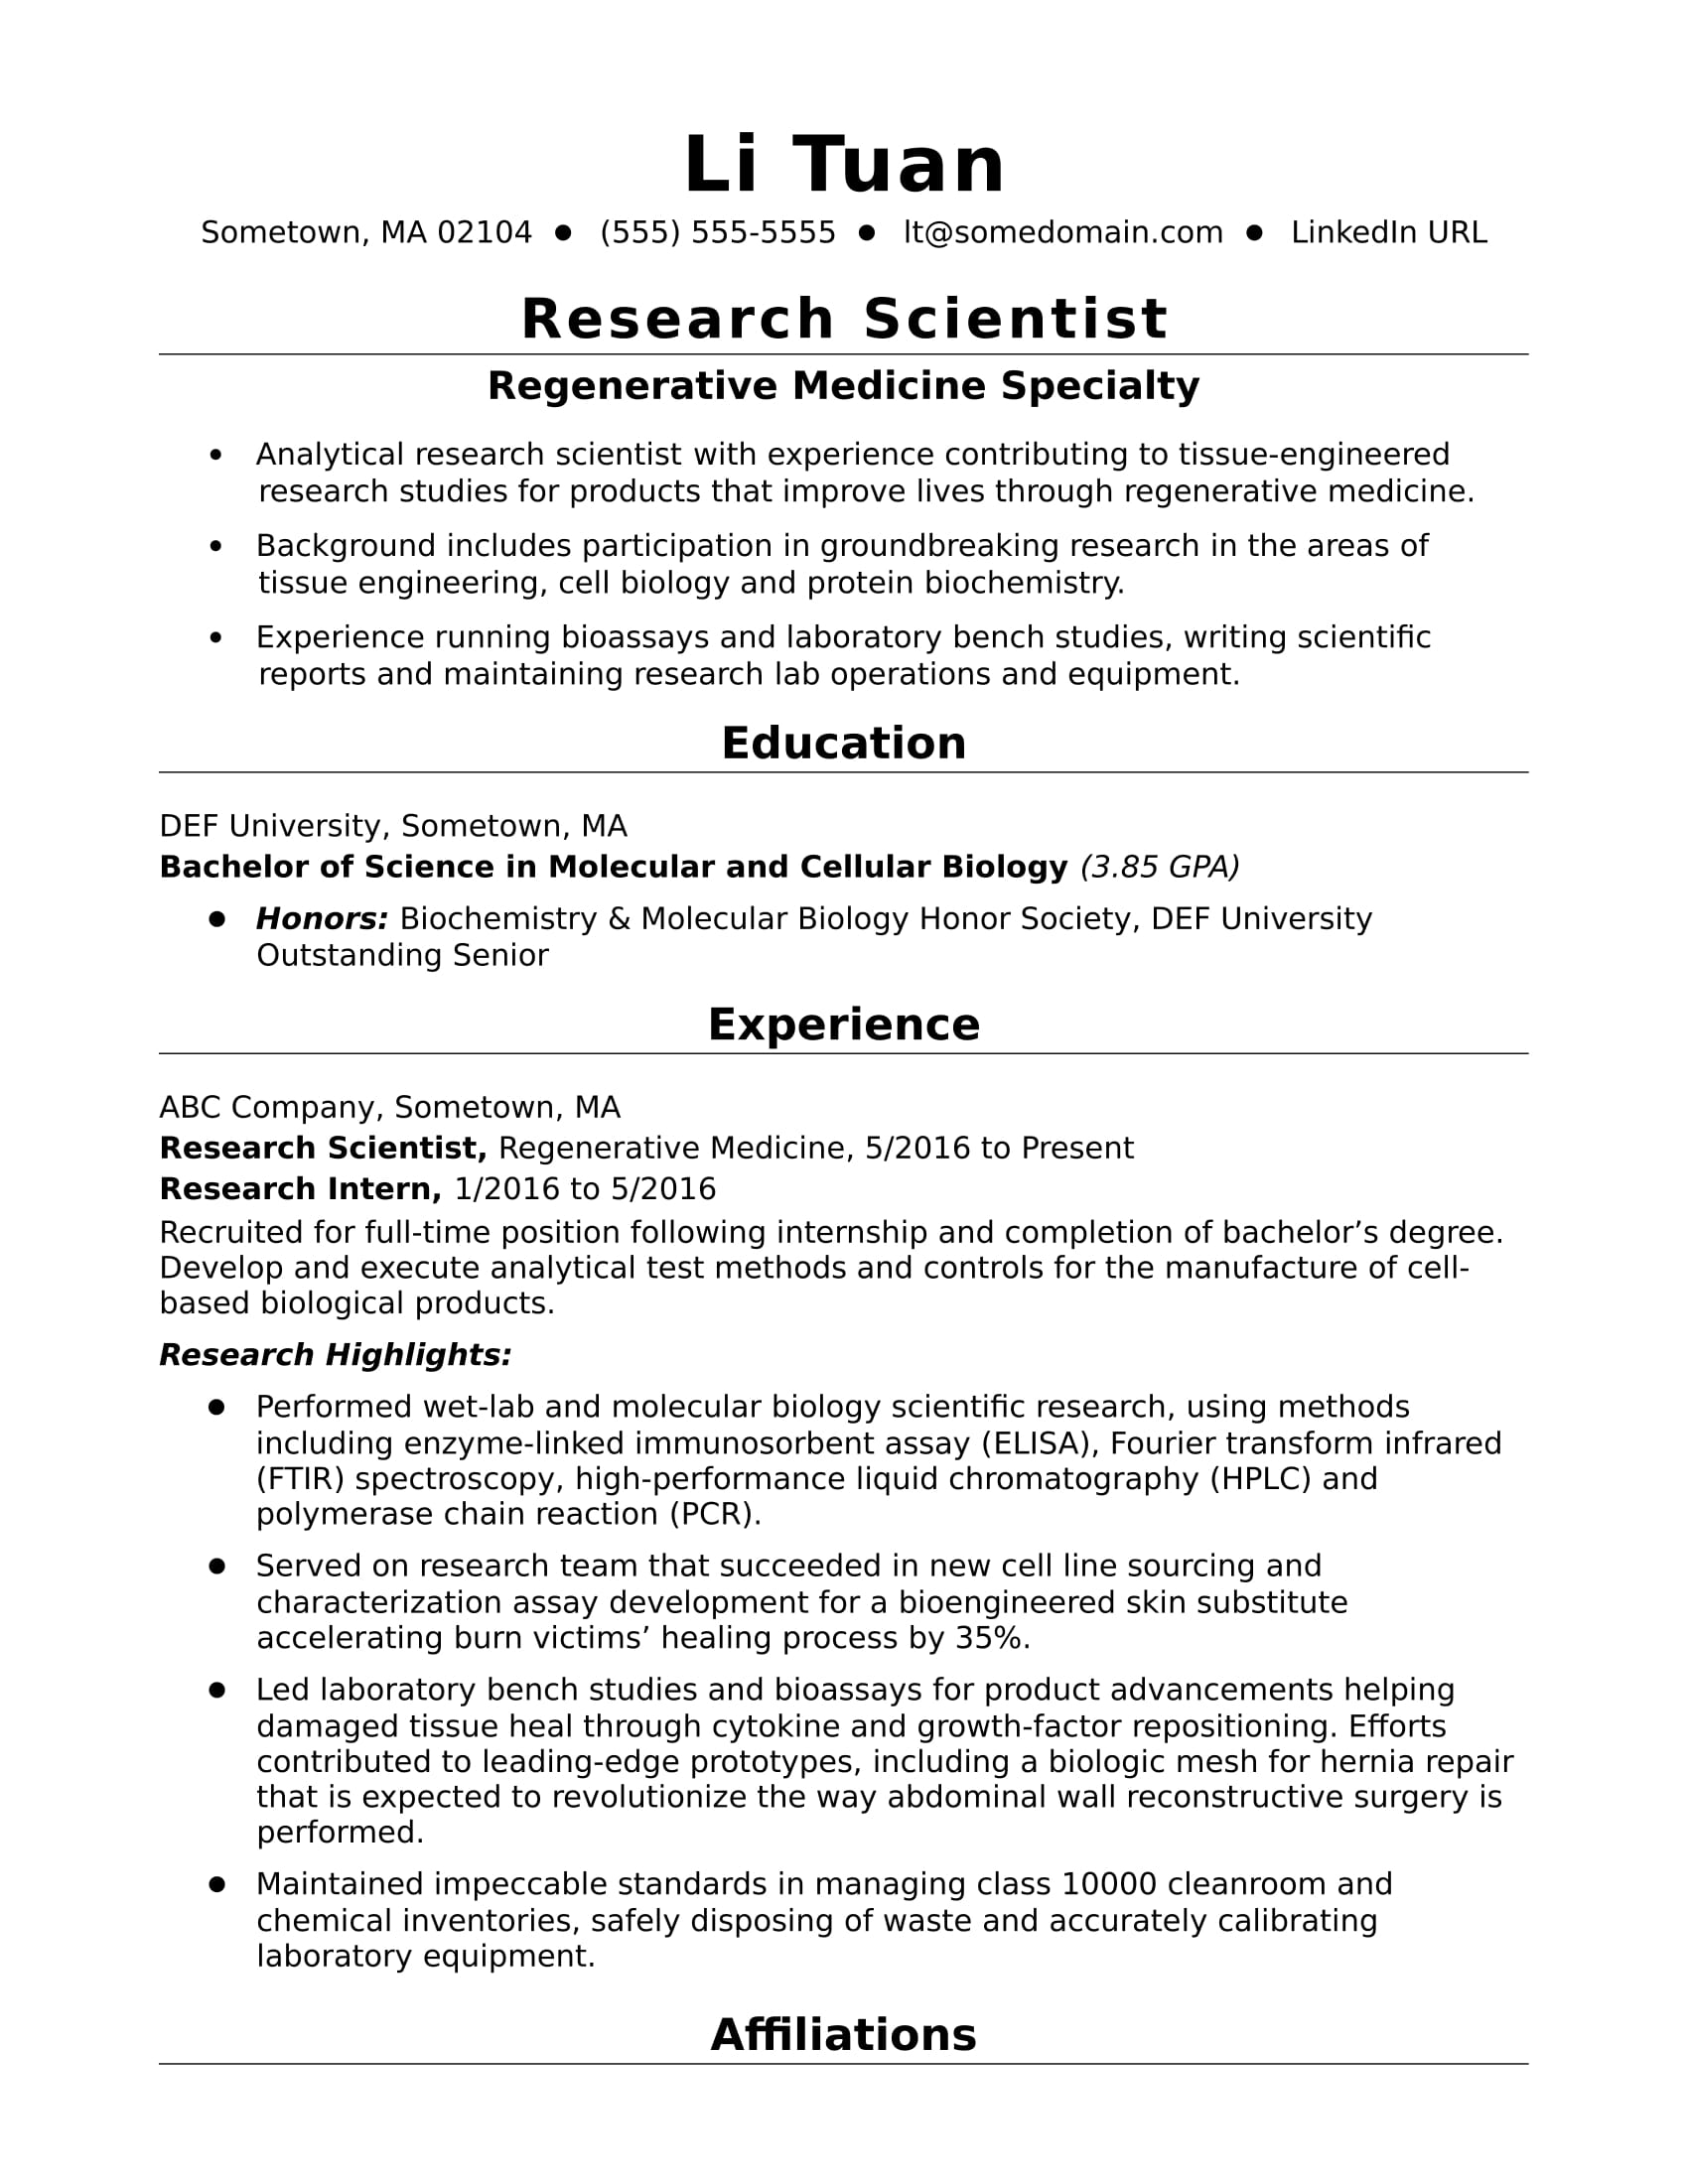 entry level research scientist resume sample monster college student biology intermediate Resume College Student Biology Resume